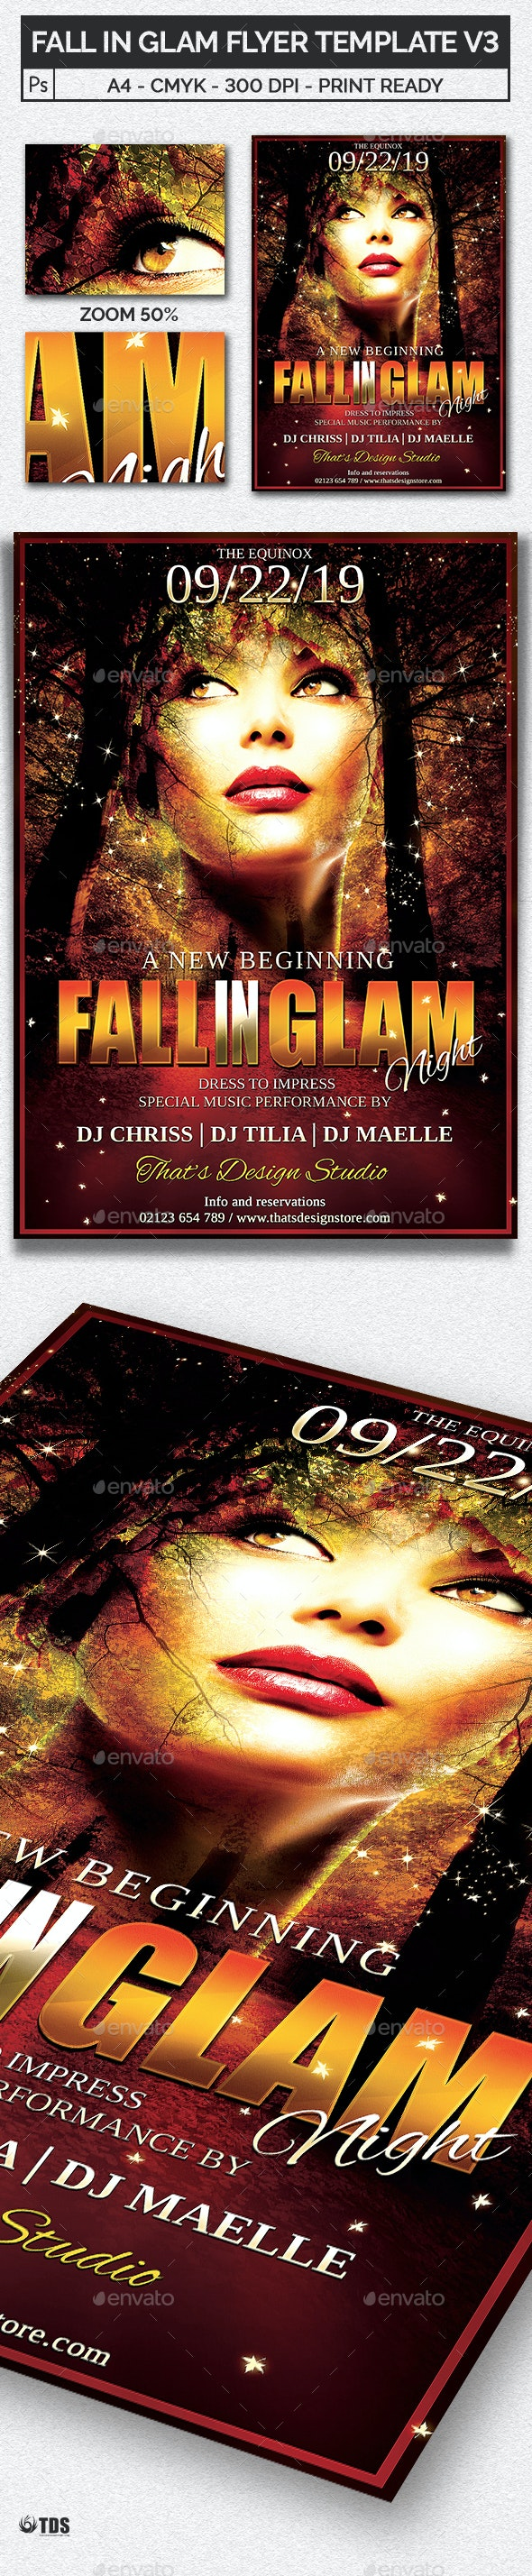 Fall in Glam Flyer Template V3 - Clubs & Parties Events